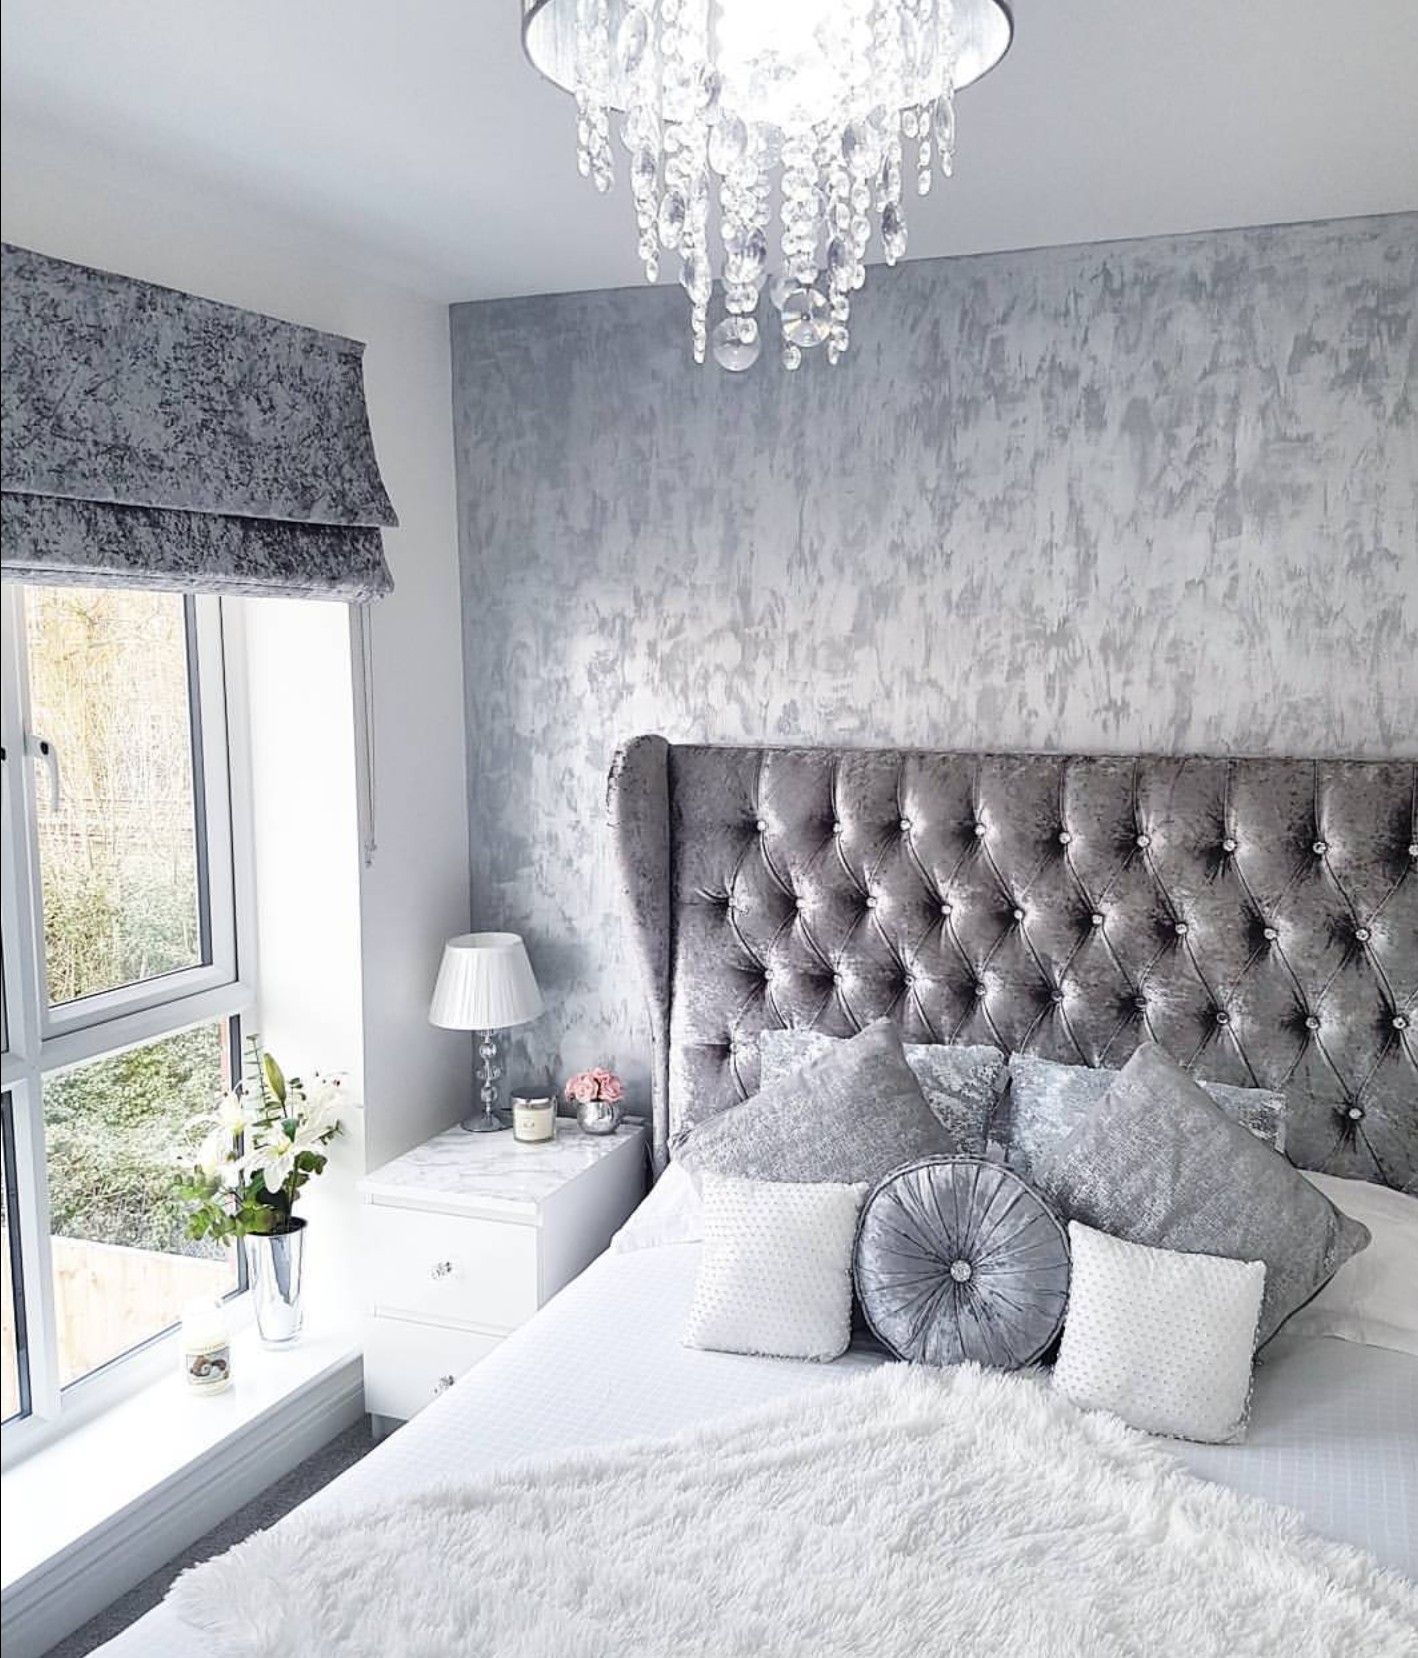 Grey Silver White Crushed Velvet Bedroom Modern Decor Inspo From Insta Glitterbedroom Silver Wallpaper Bedroom Glamourous Bedroom Wallpaper Bedroom Home